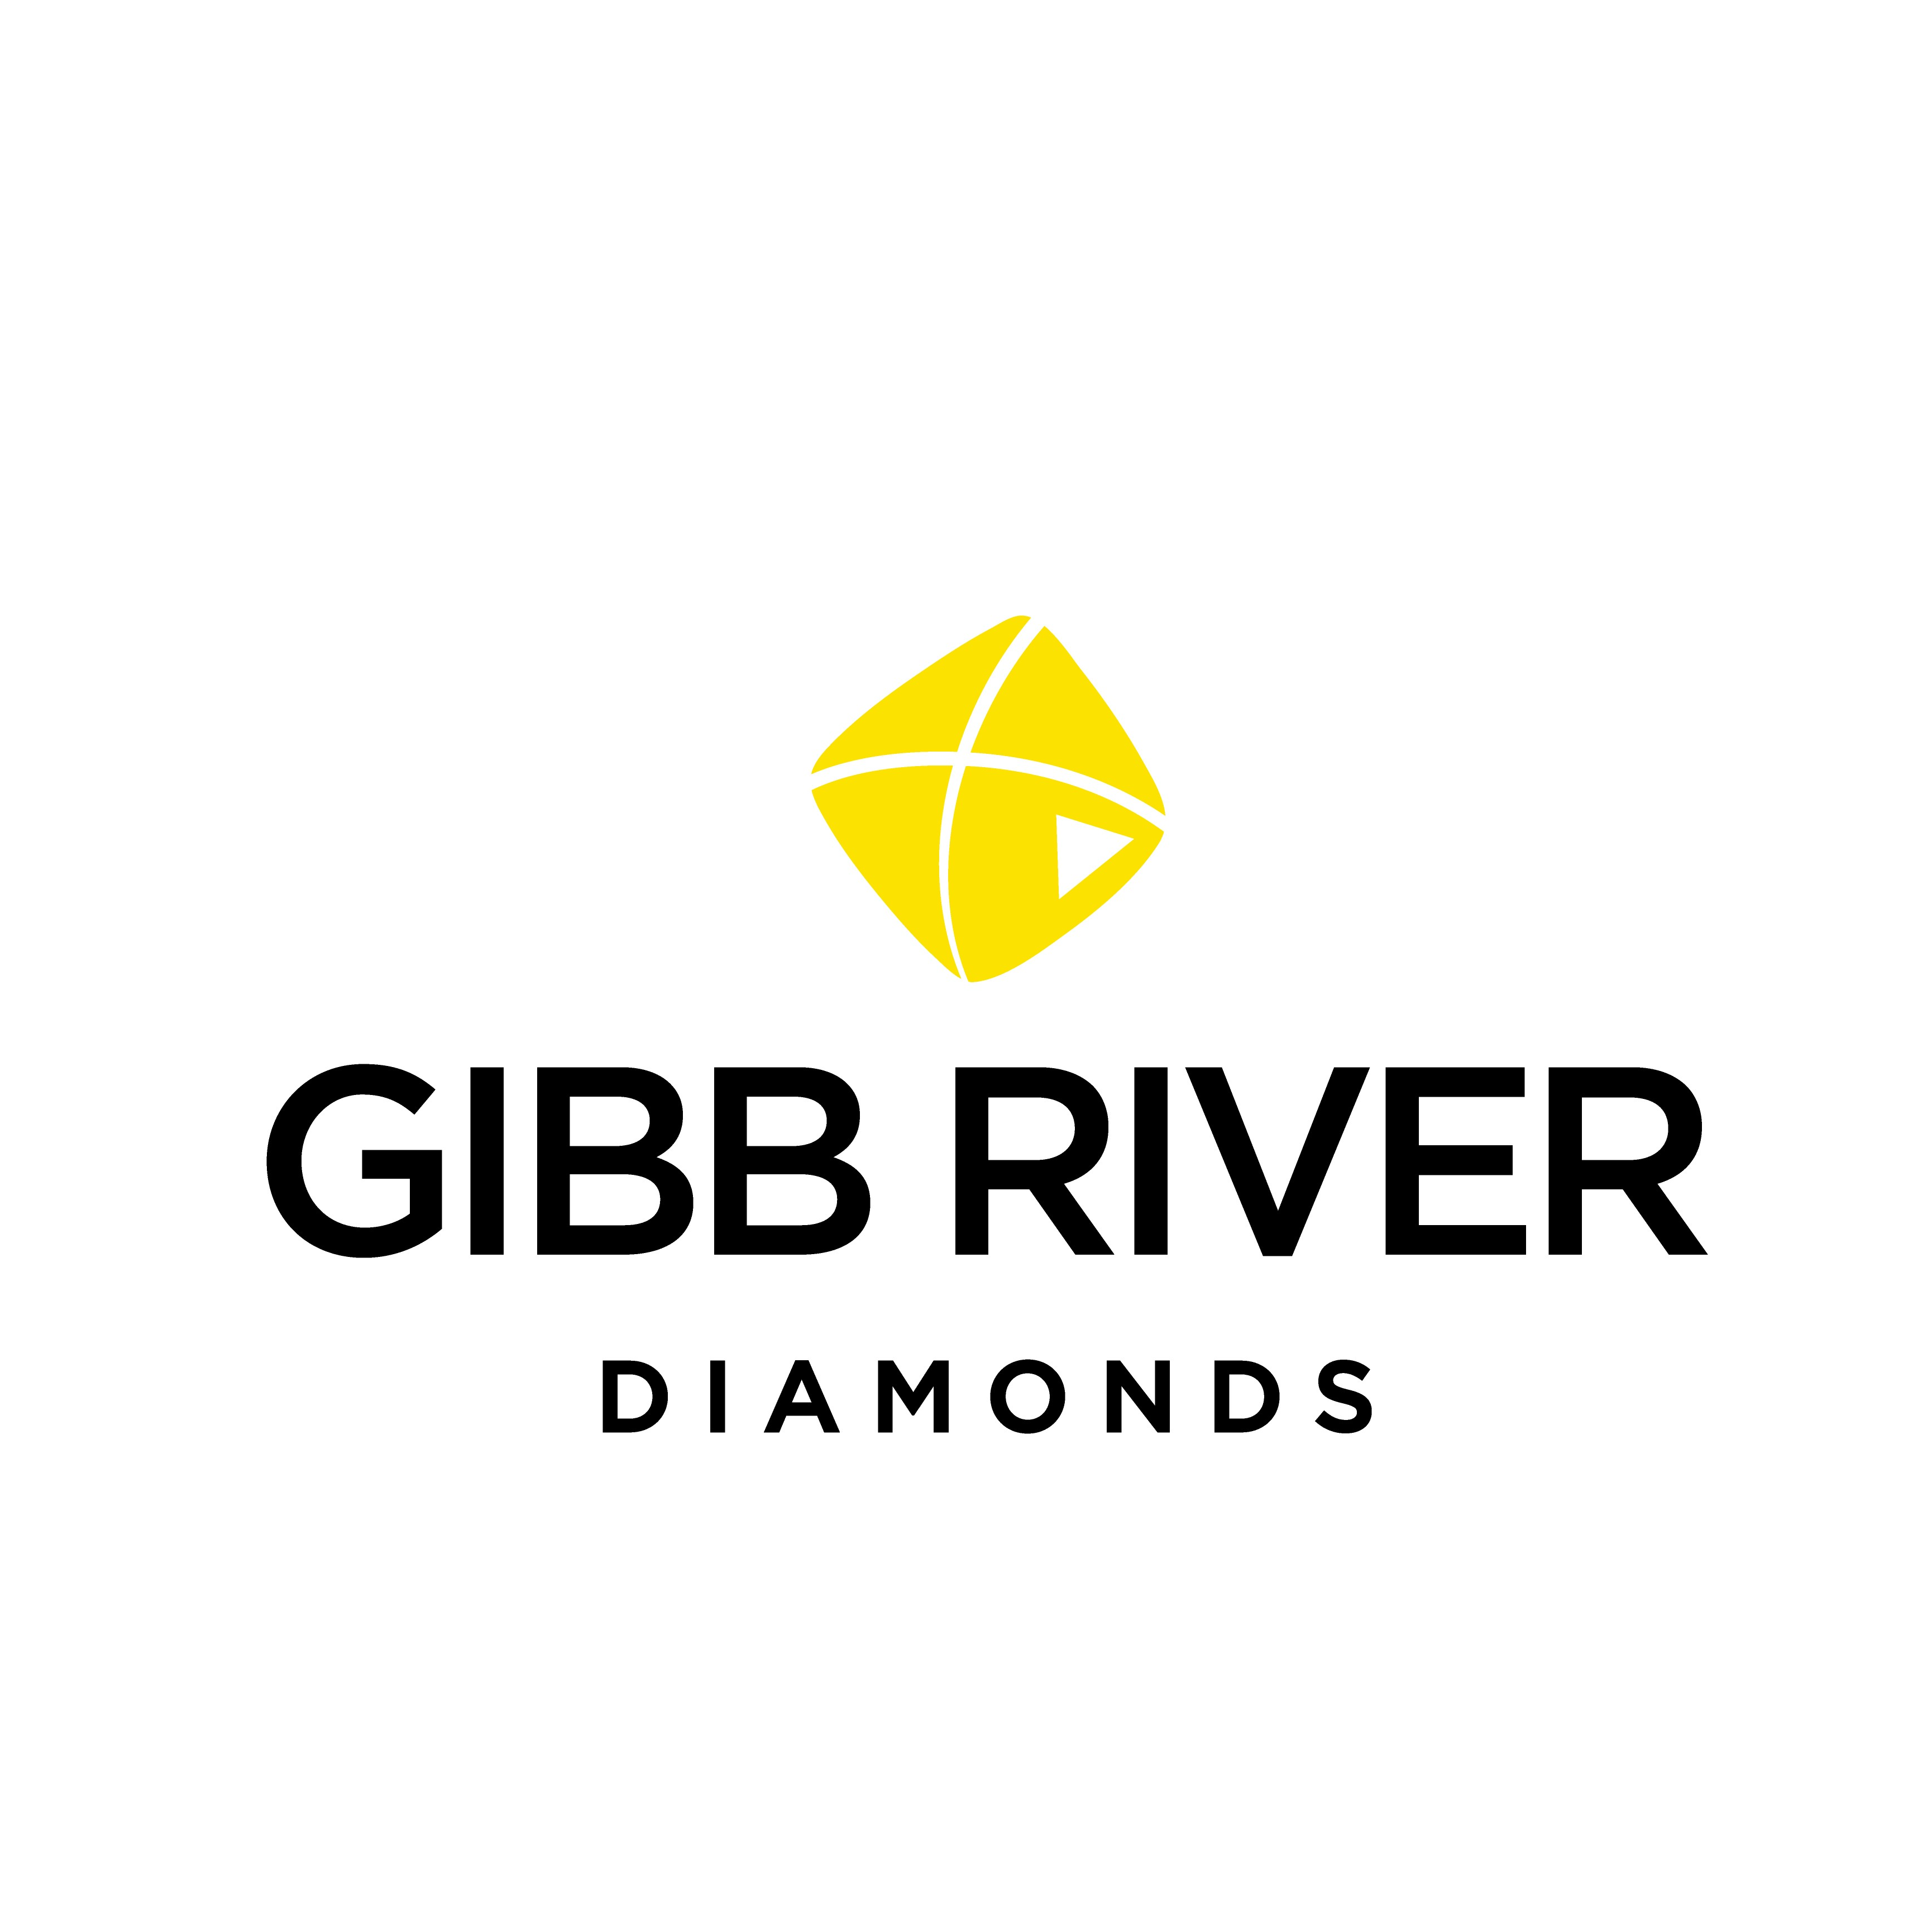 GIBB RIVER DIAMONDS LIMITED